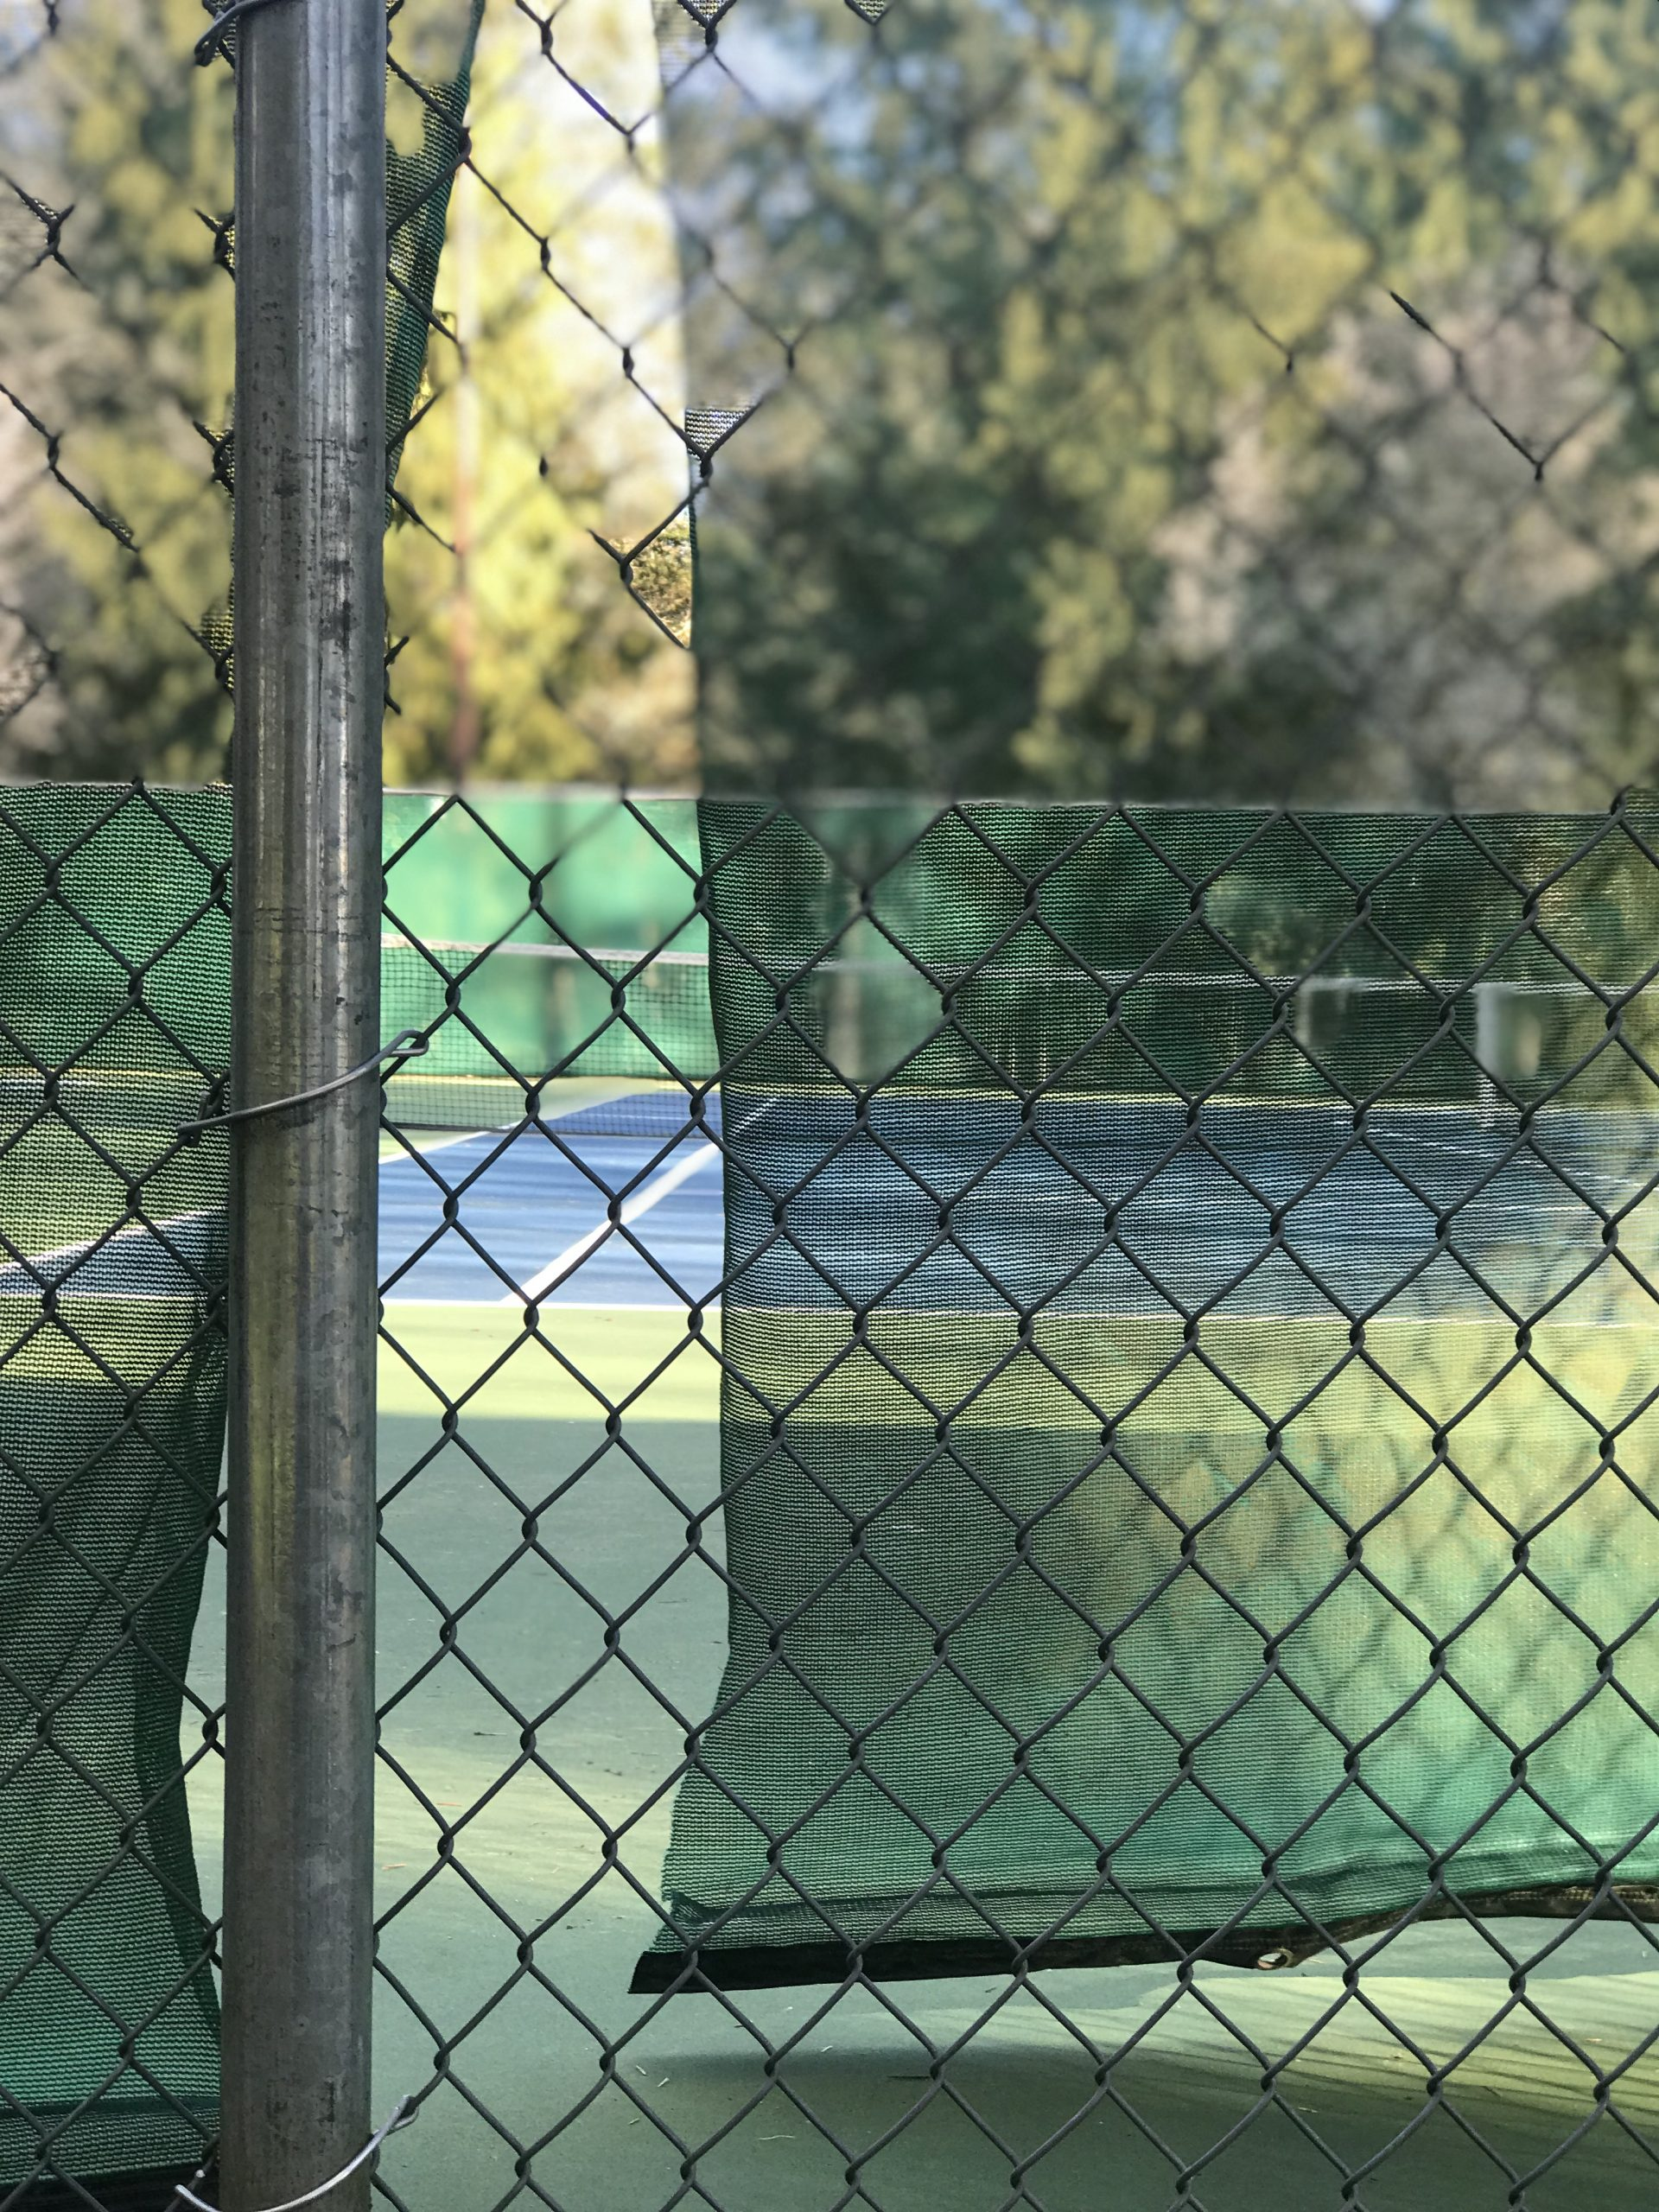 Tennis Courts abandoned